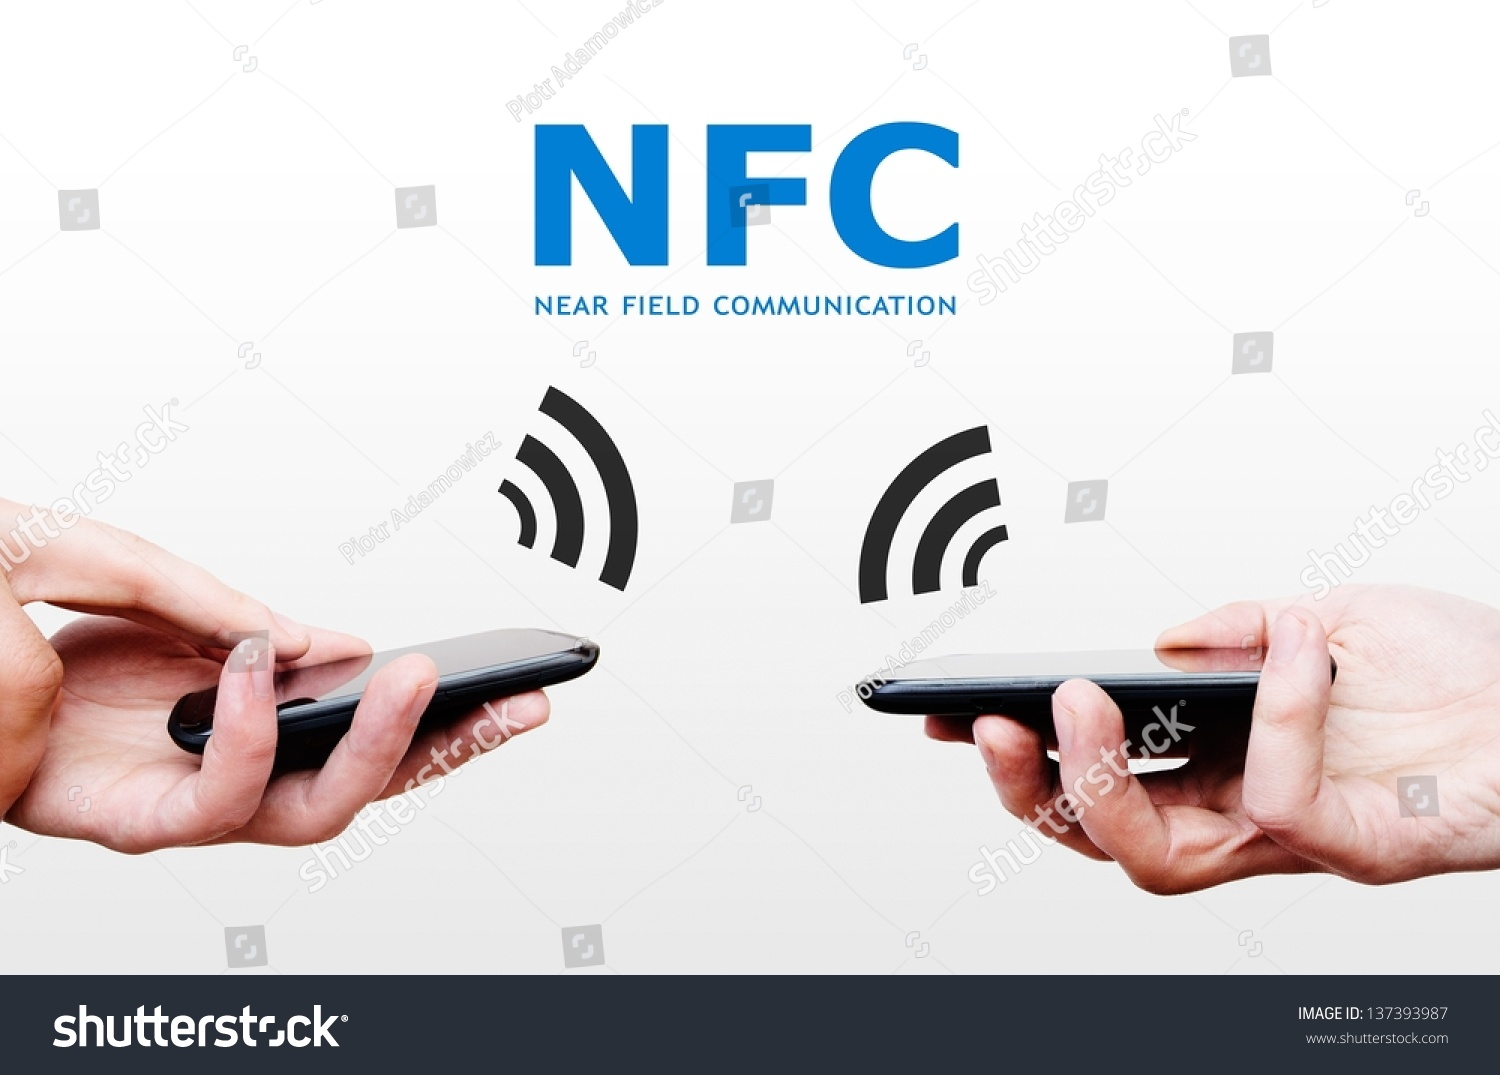 Two Mobile Phones With Nfc Payment Technology. Near Field Communication Stock Photo 137393987